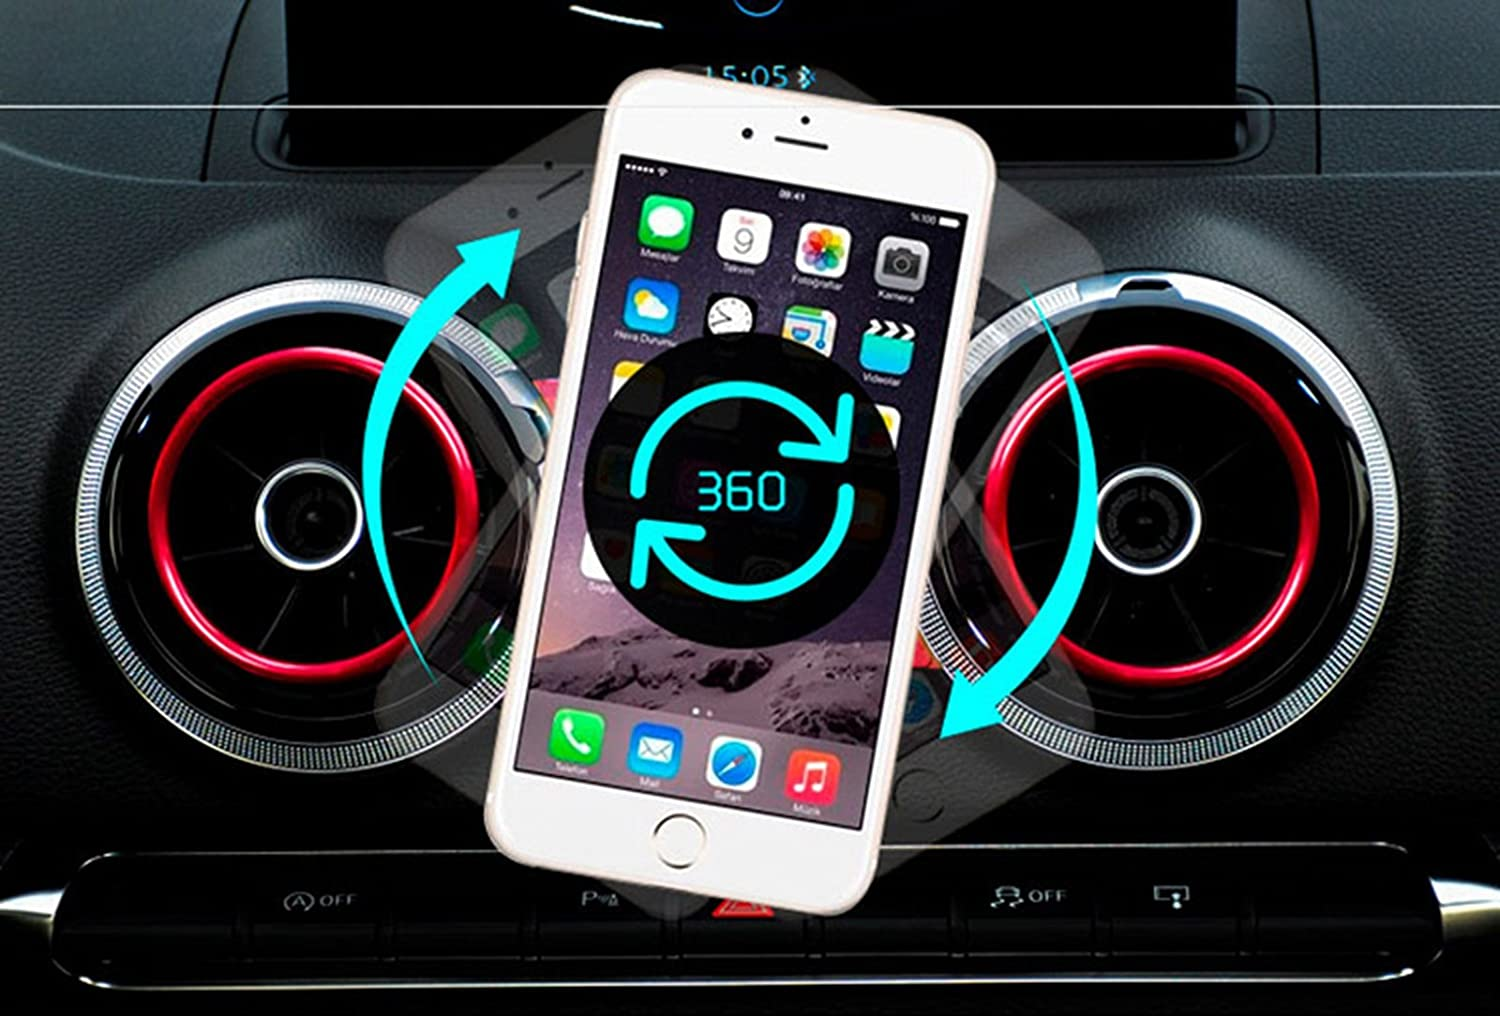 XBERSTAR Phone Holder Car Air Vent Outlet Mount 360-Degree Rotary Swivel Cell Phone Magnetic Cradle for Audi A3 S3 Blue